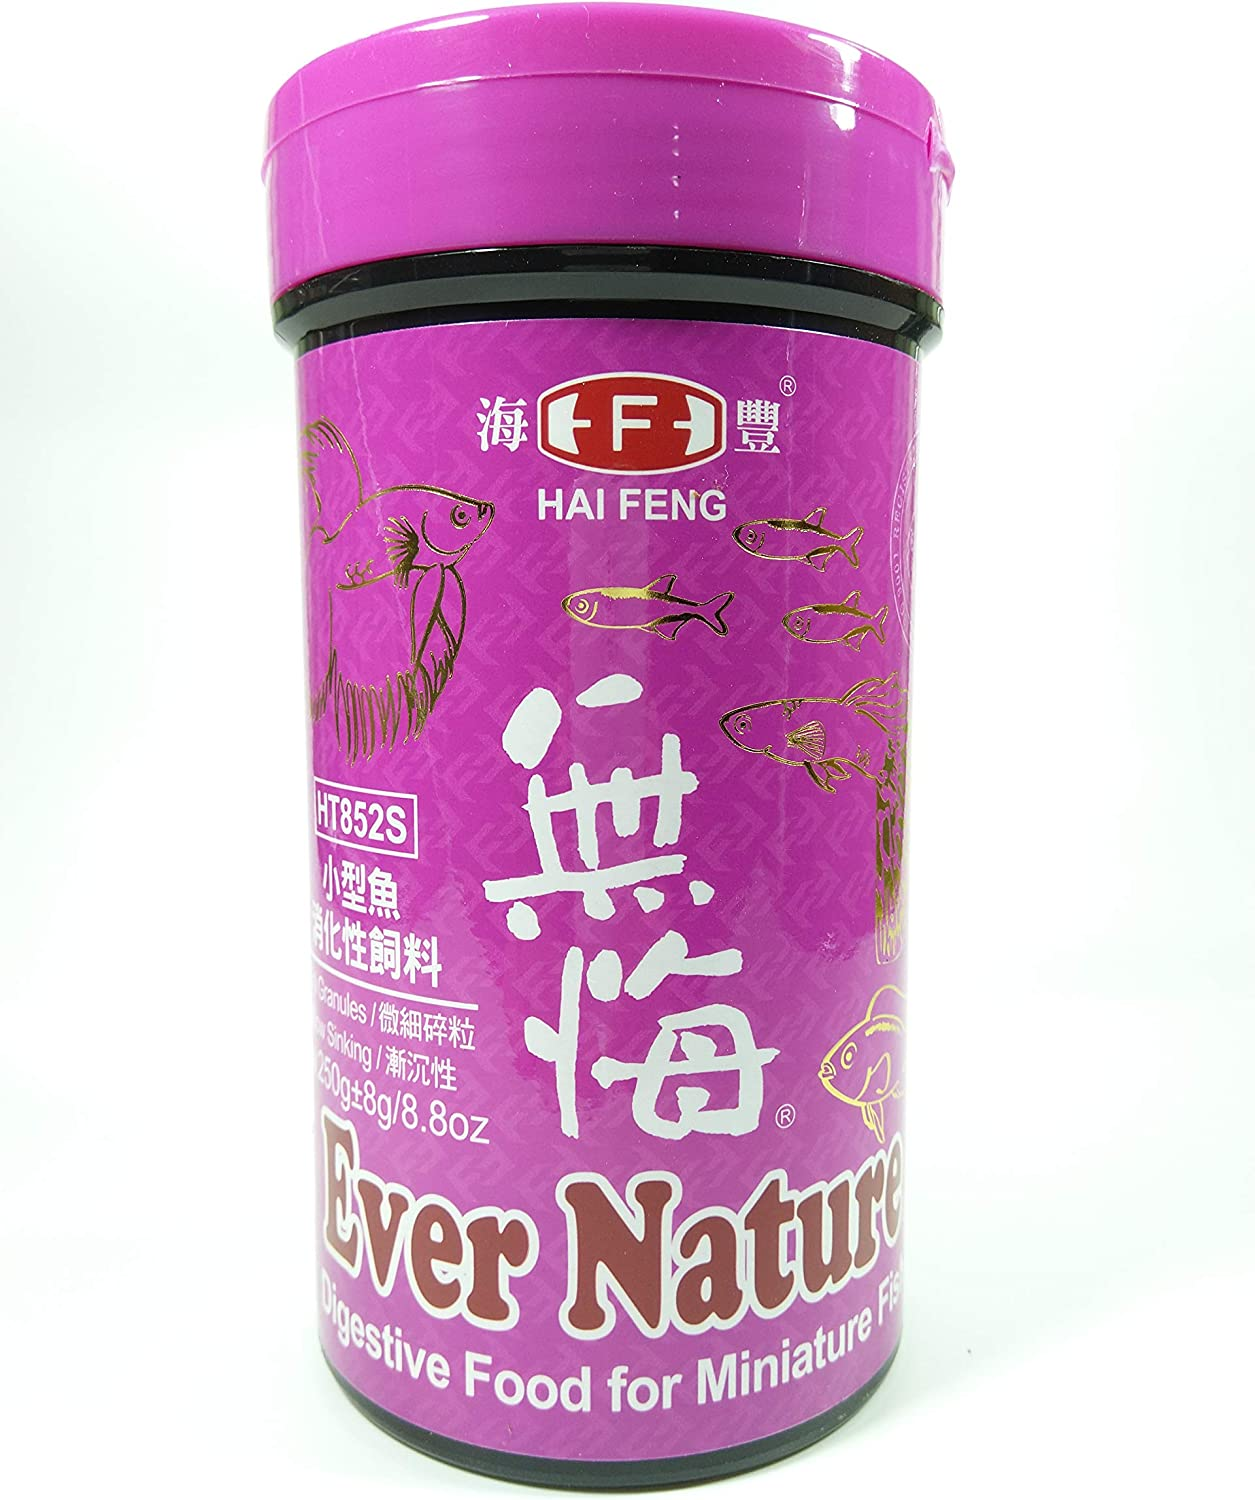 Hai Feng Ever Nature Digestive Food for Miniature Fish, Slow Sinking, Mini Granules, 250g (8.8 oz)